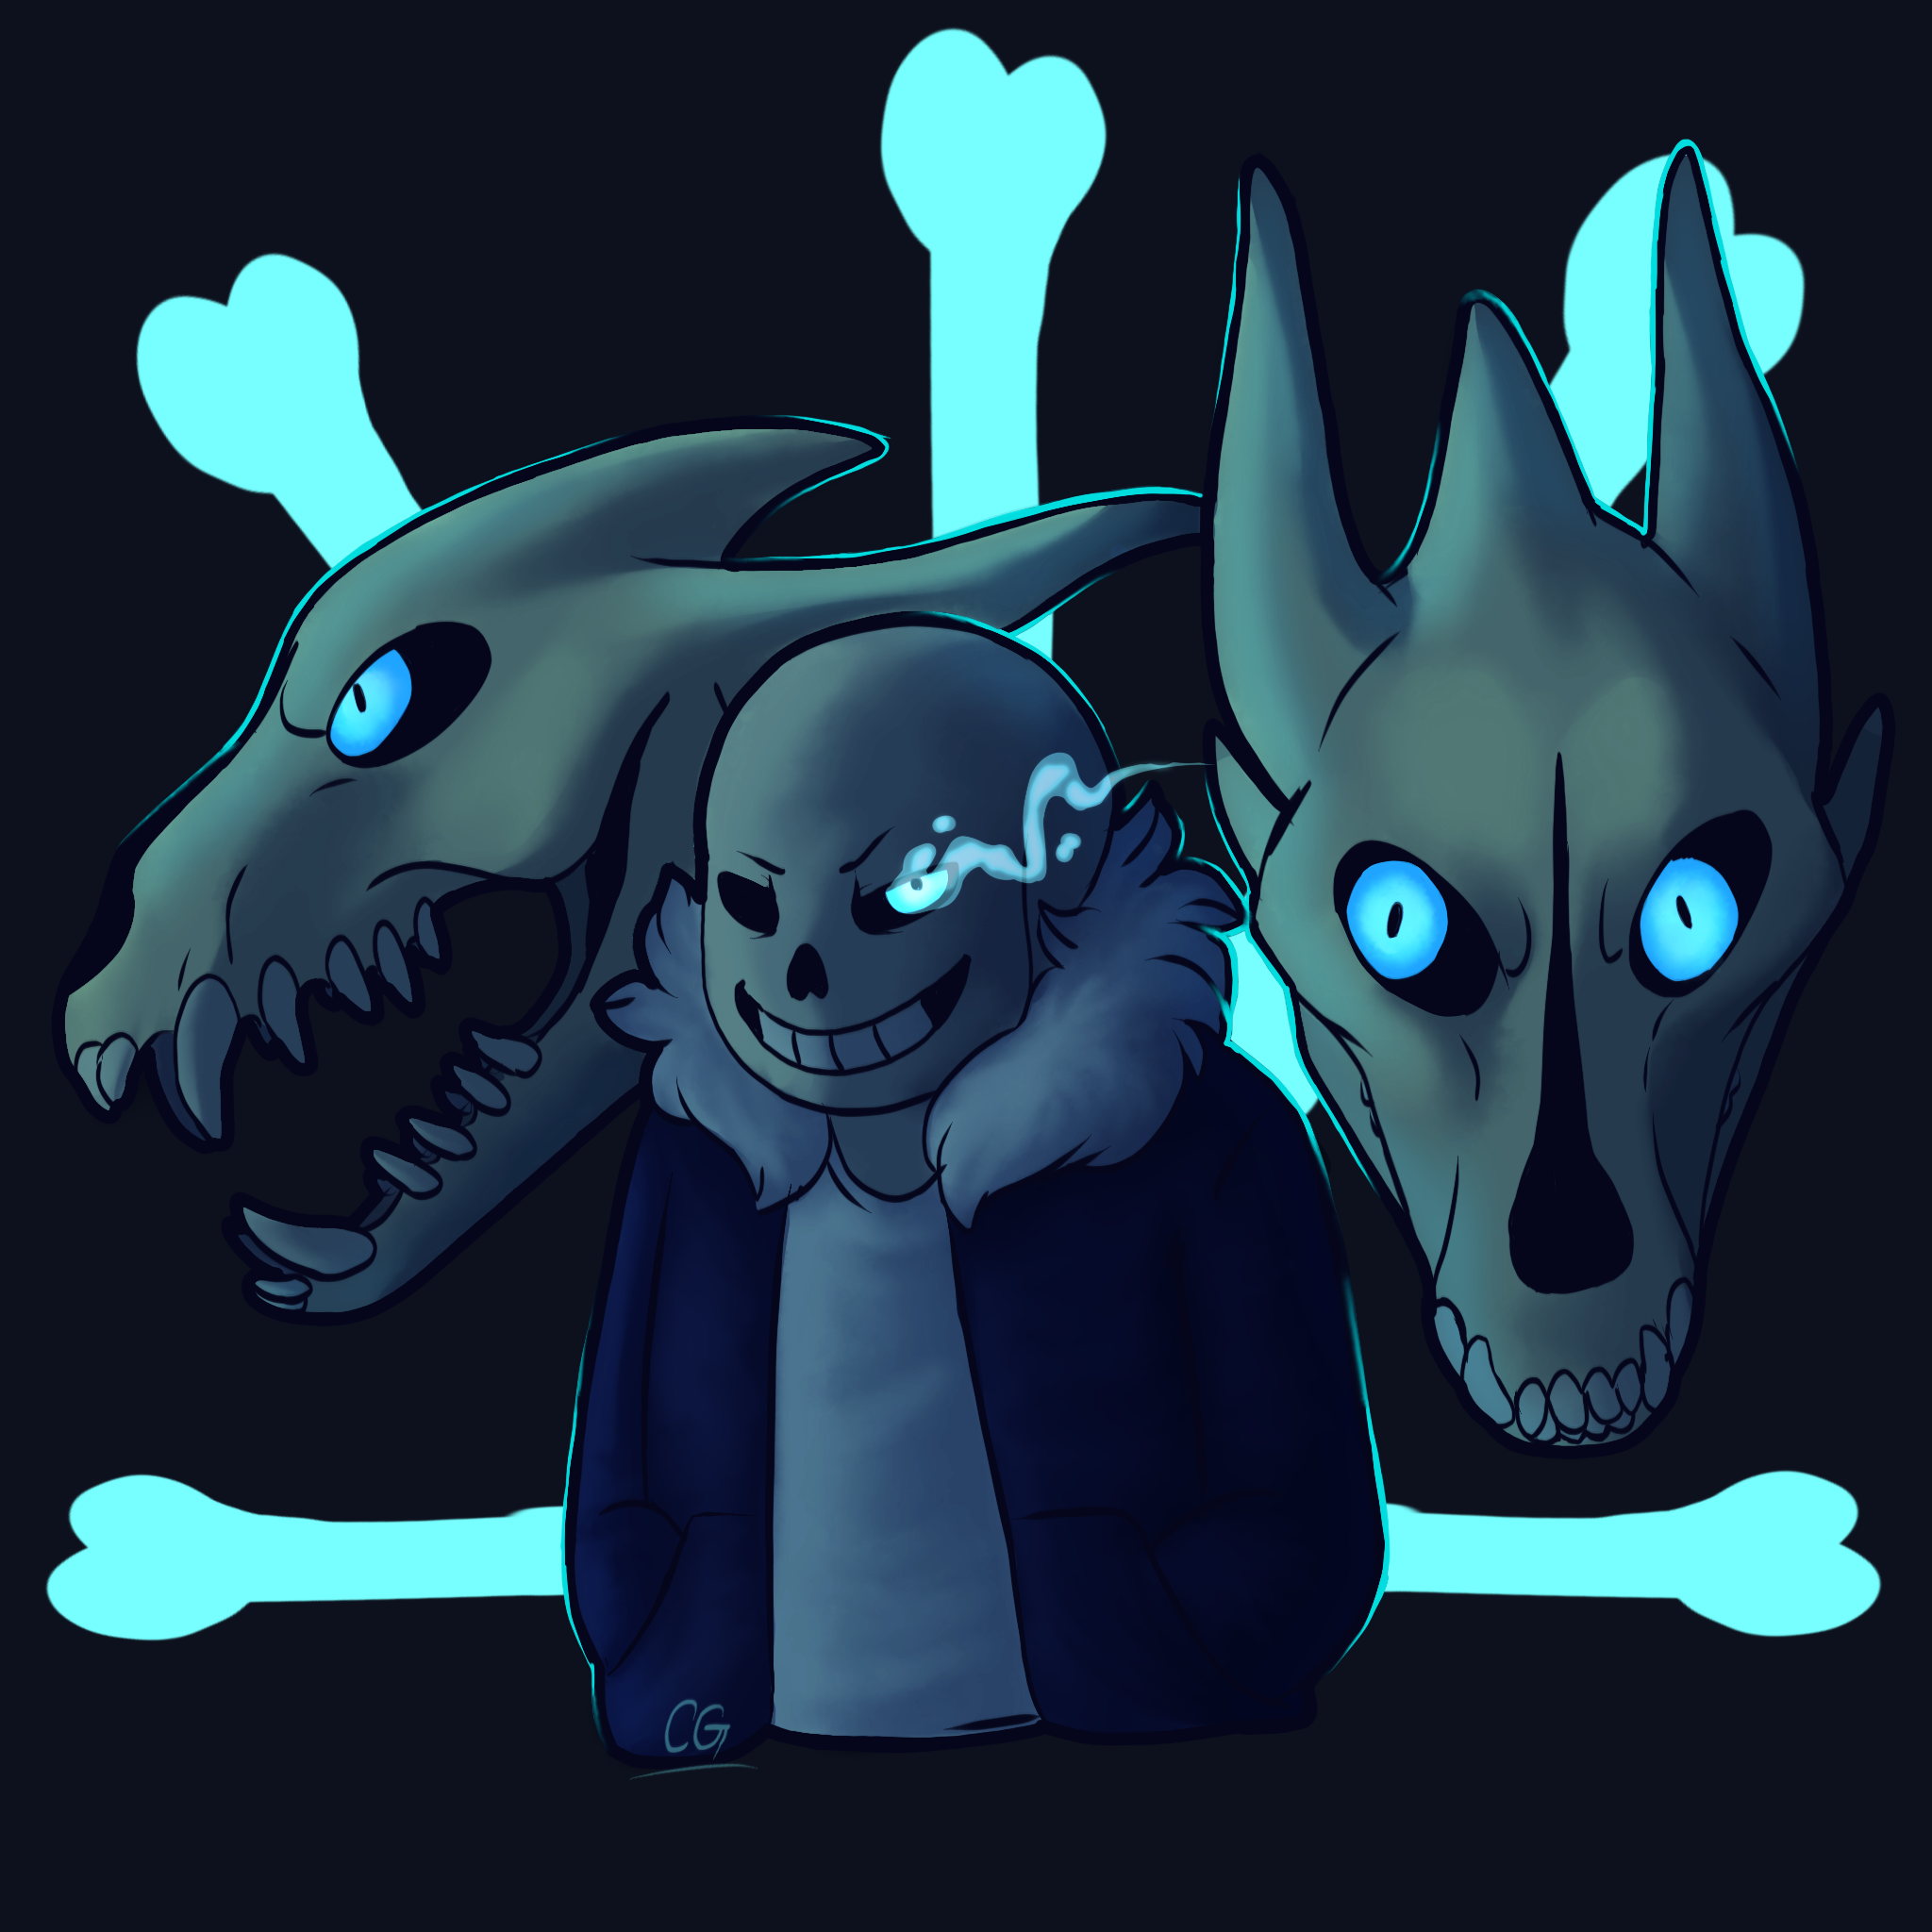 You're Gonna Have A Bad Time — Weasyl